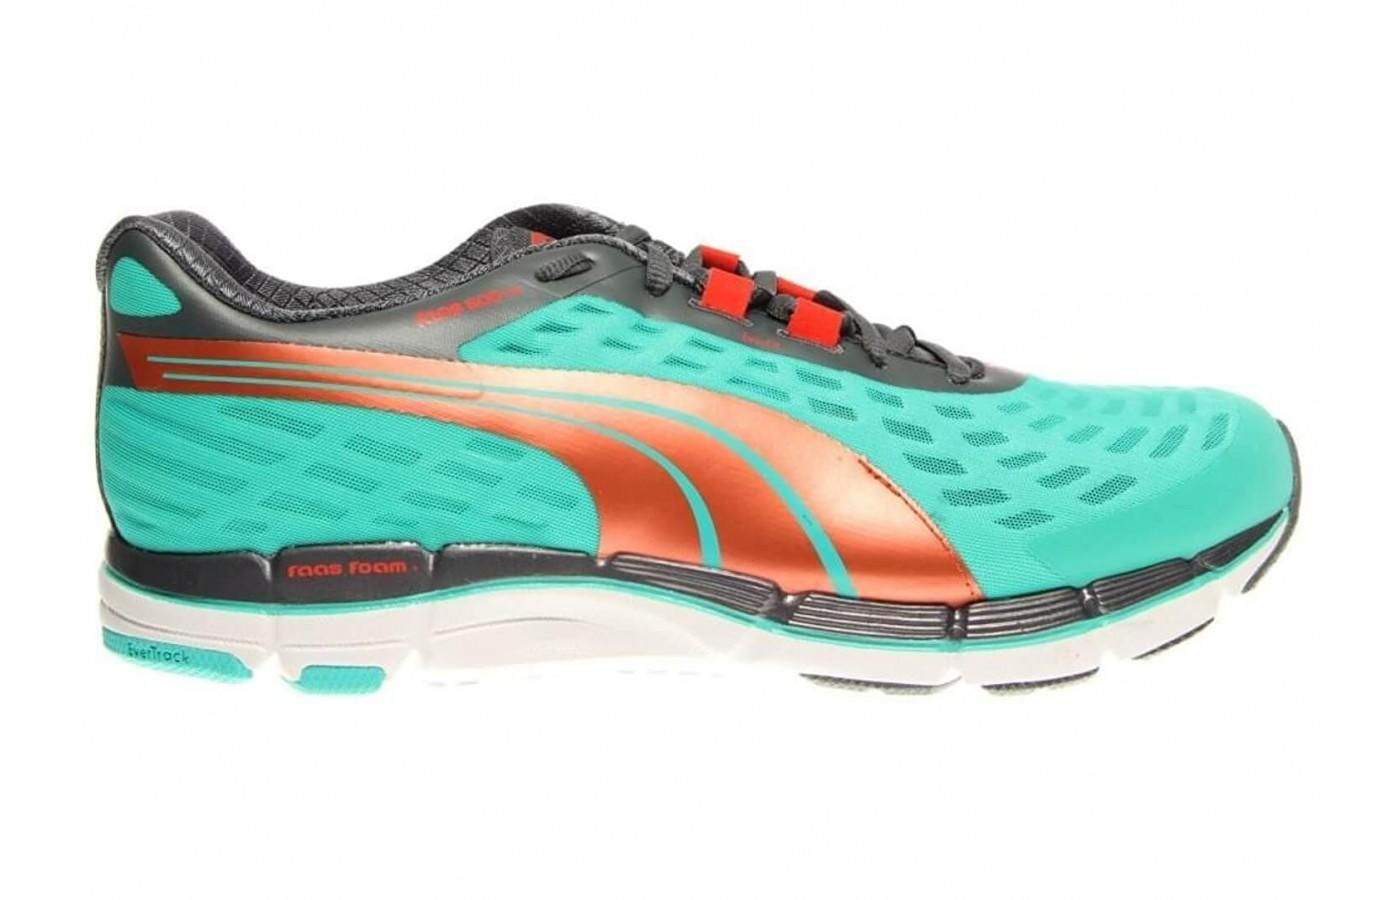 the Puma Faas 600 v2 from the right